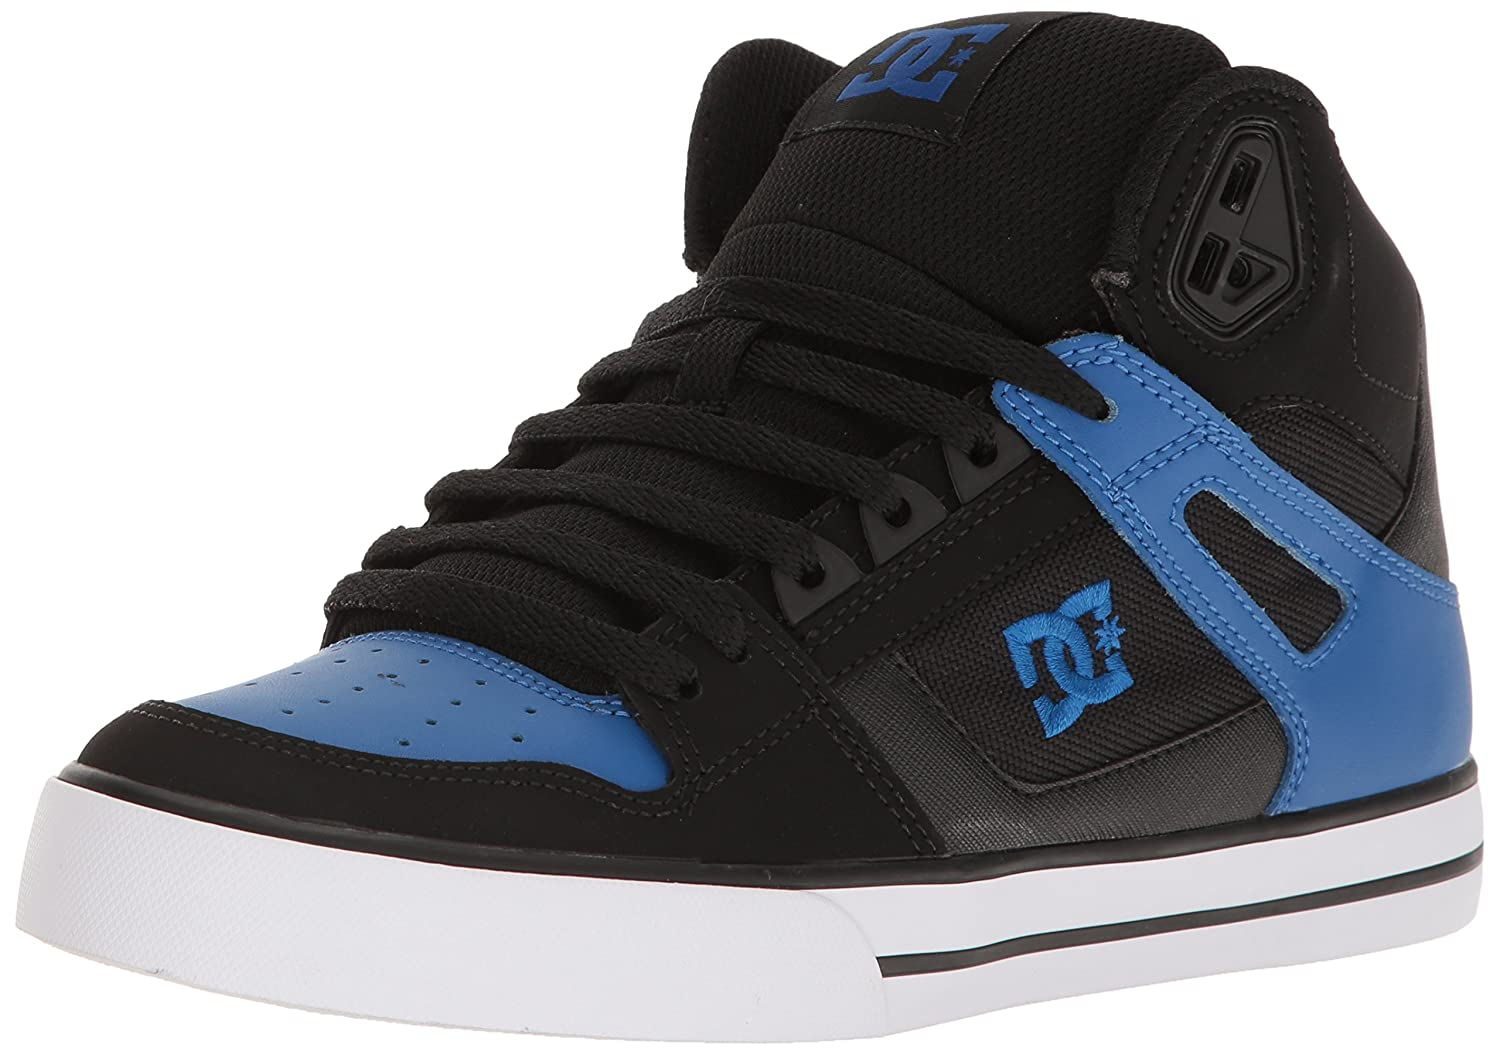 a7f8b27d Amazon.com: DC Shoes DC Men's Spartan High WC Skate Shoes: Shoes